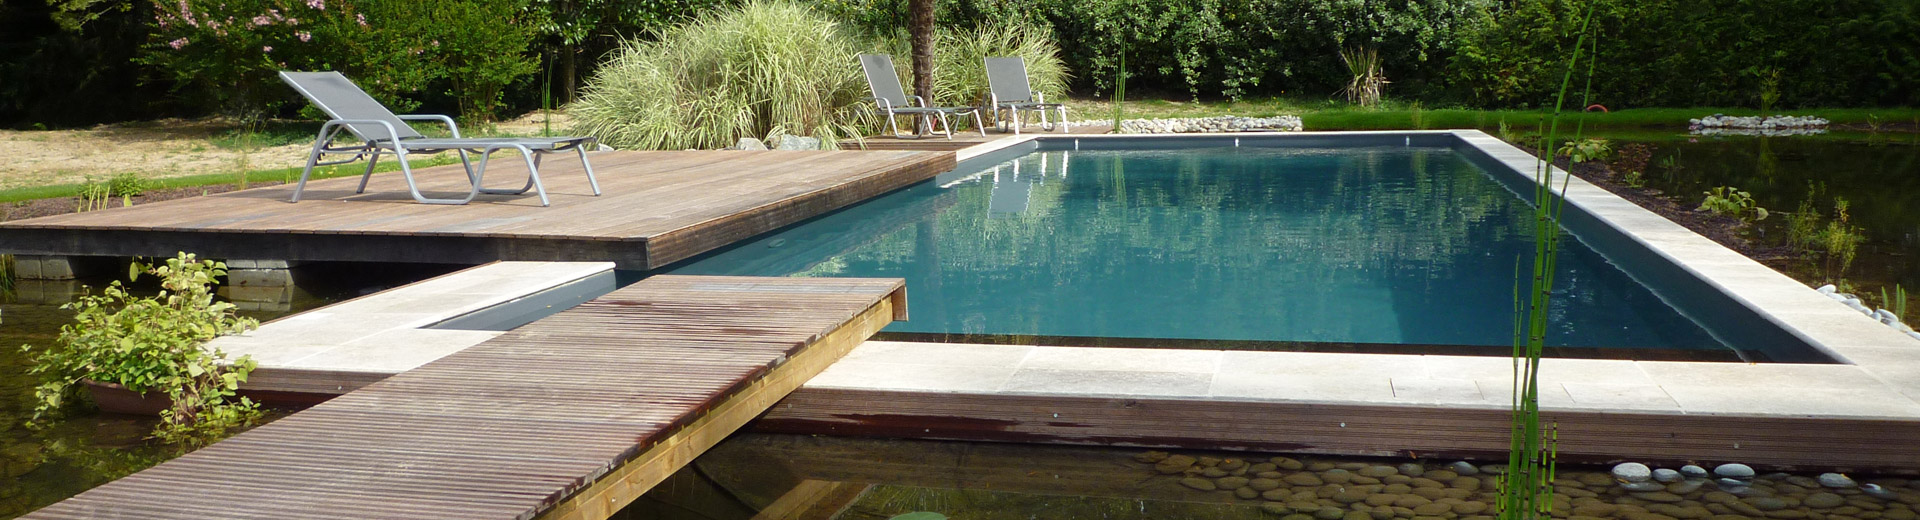 Piscine naturel piscines naturelles paysag res for Piscine naturelle prix